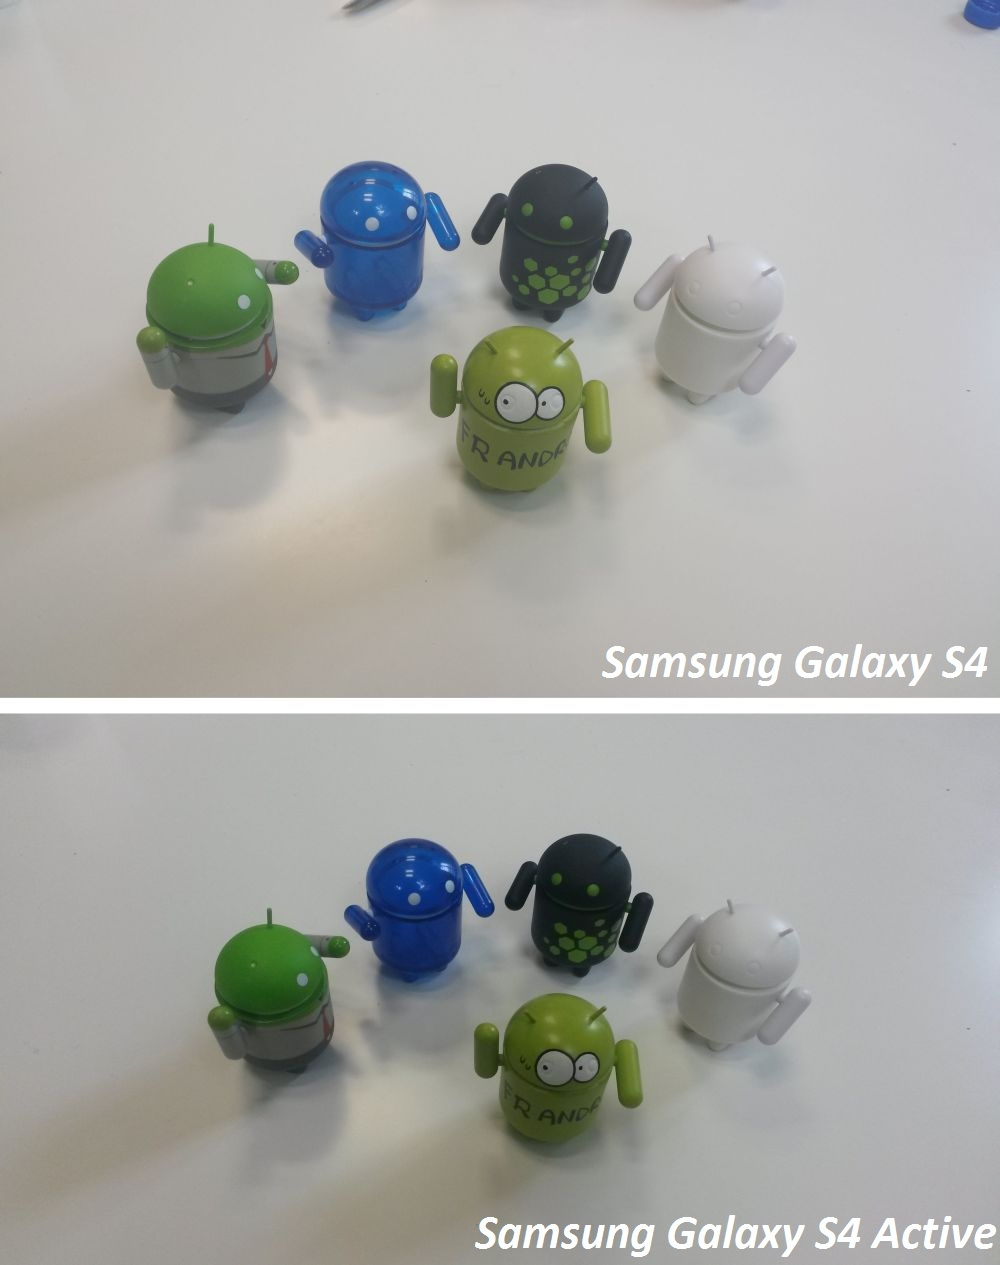 extrait android samsung galaxy s4 vs samsung galaxy s4 active test photo intérieur 1